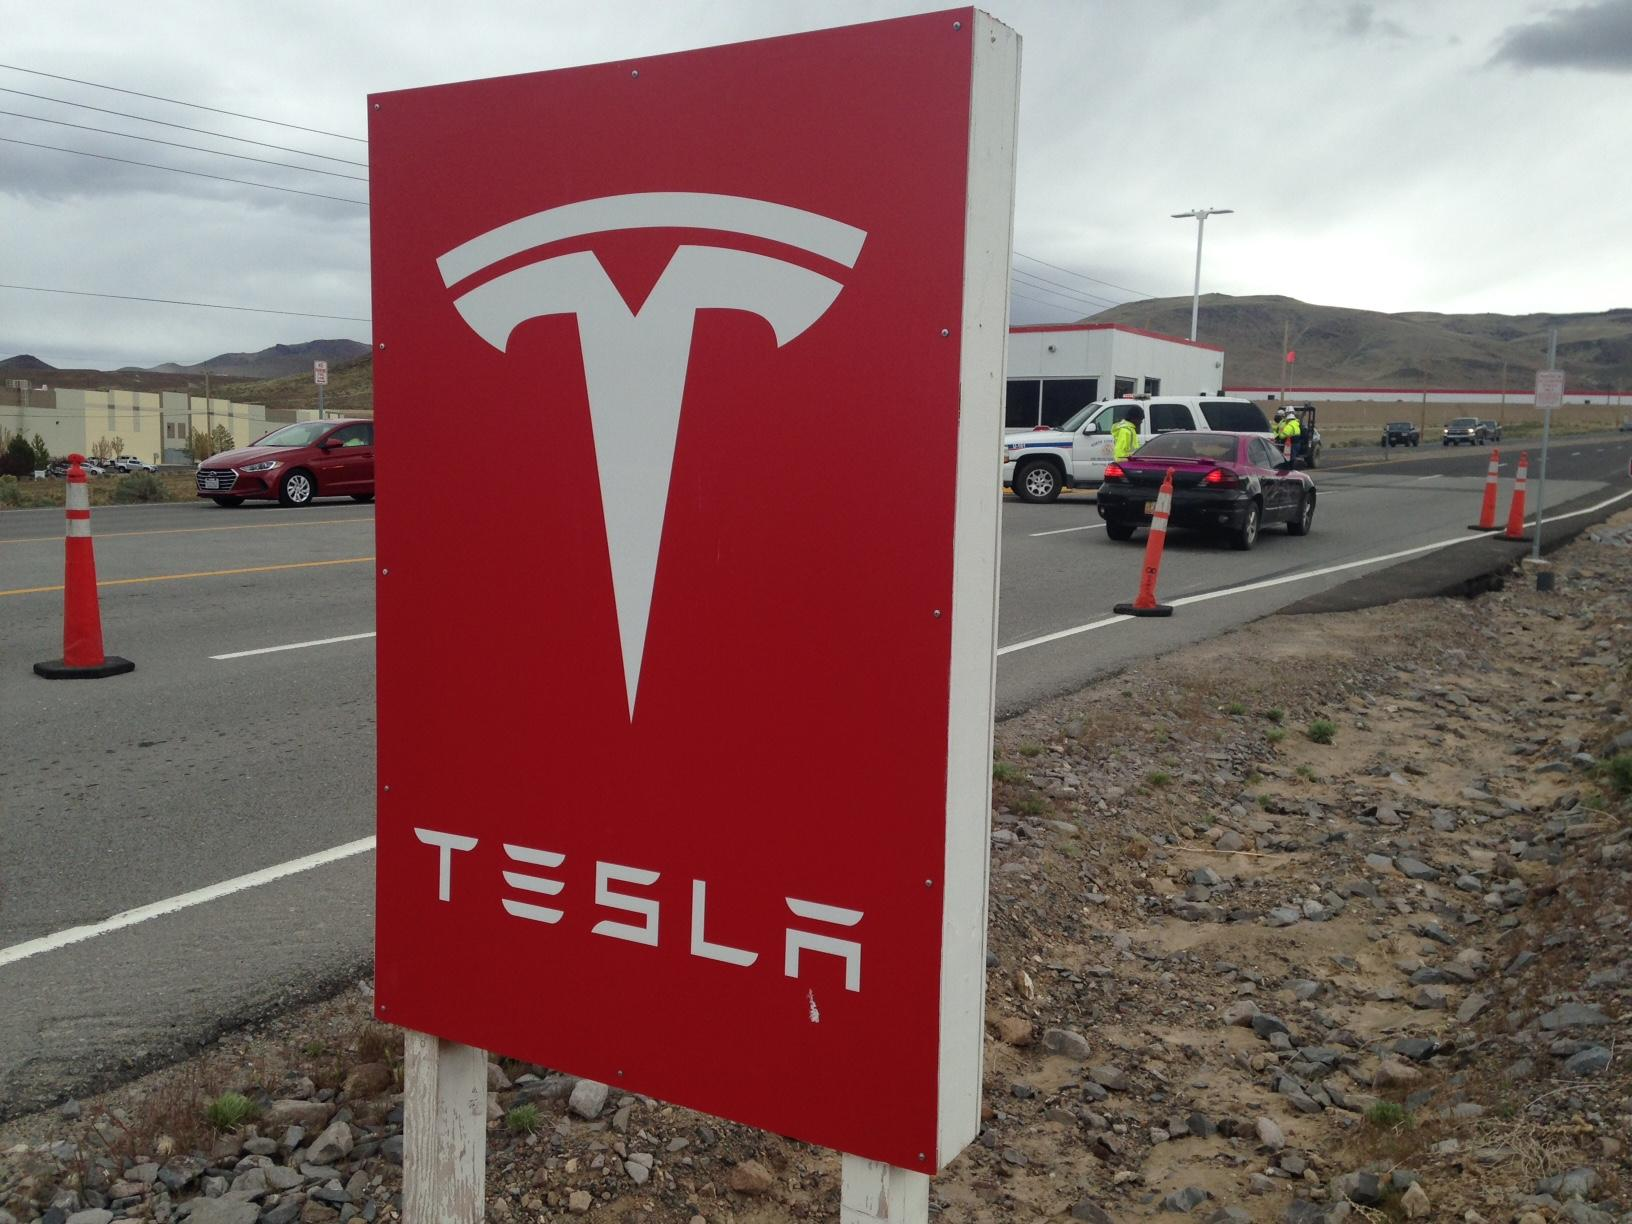 Authorities respond to a report of a hazardous spill at the Tesla Gigafactory site in Storey County, Nev., on Monday, April 17, 2017. (Sinclair Broadcast Group)